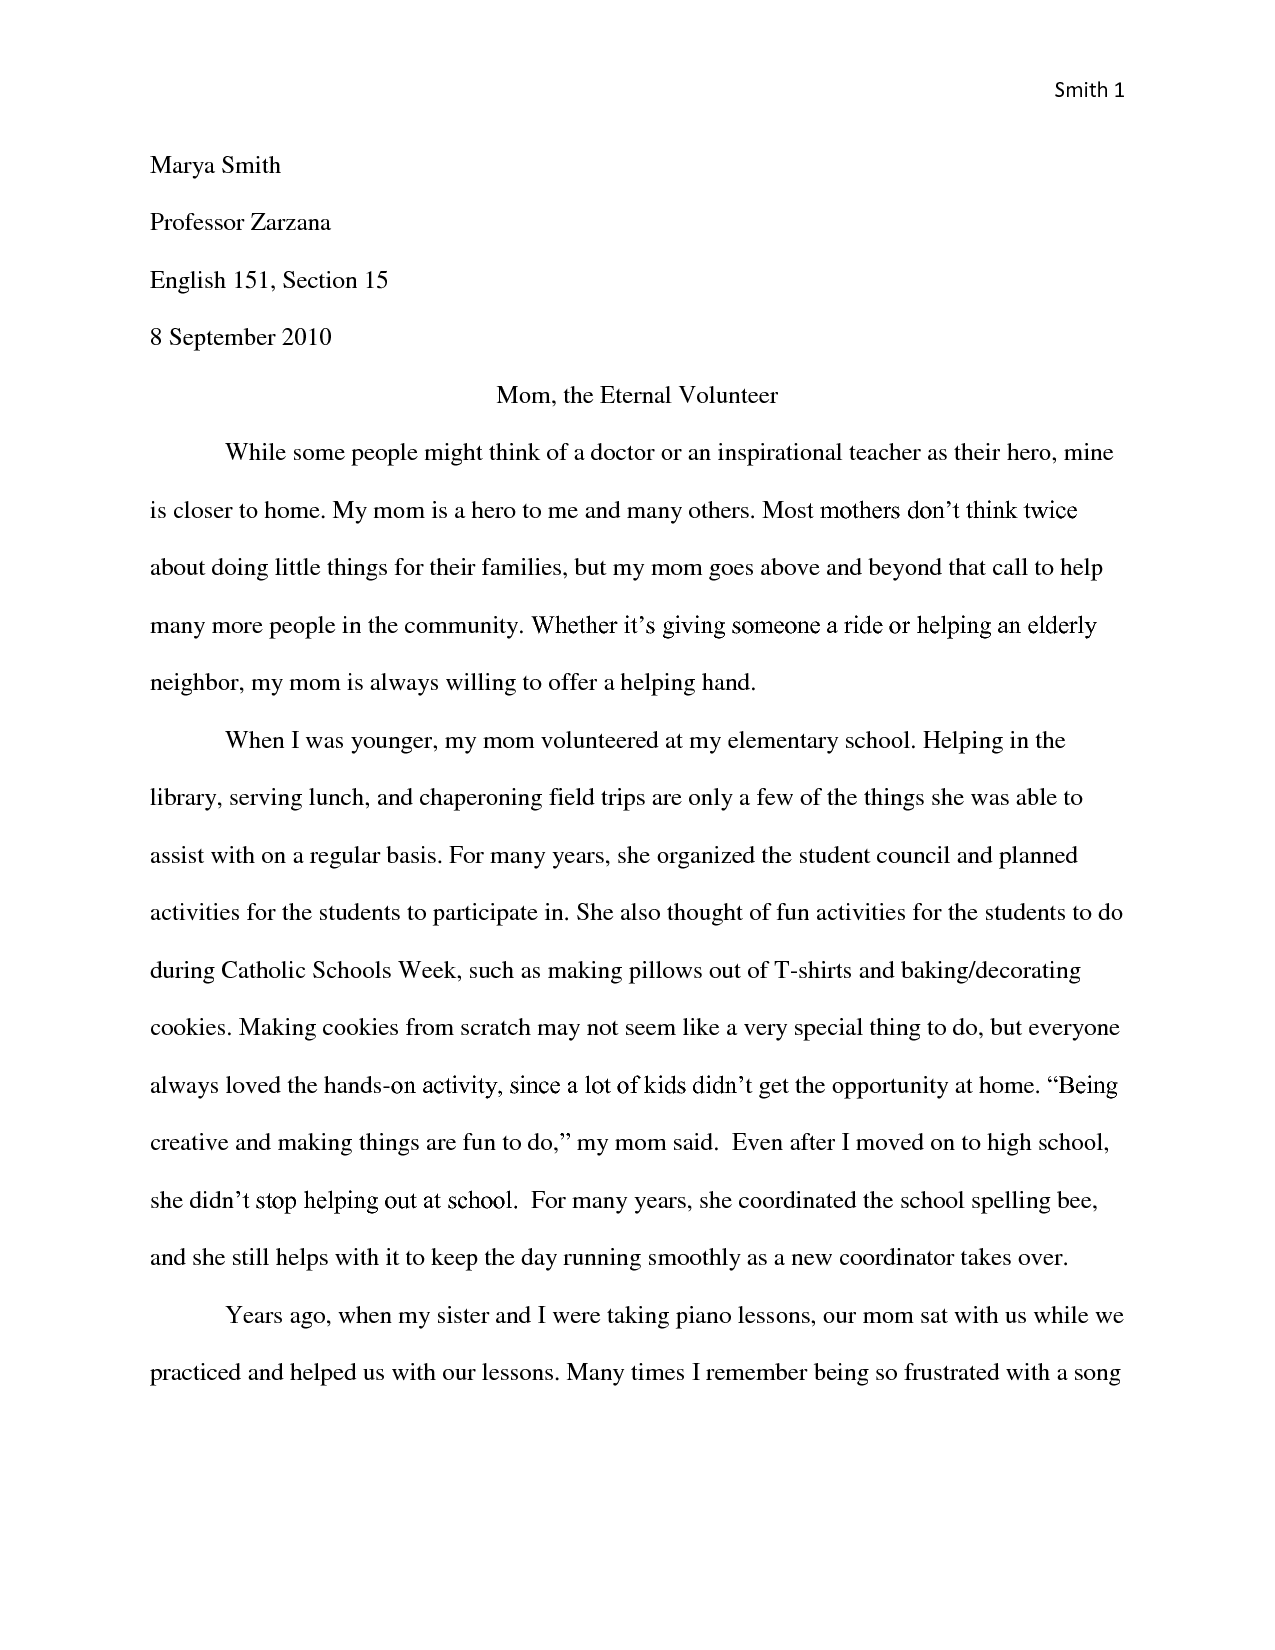 012 Essay Example My Hero Mom Essays Template Heroism About Moment Of Pain And Regret Short Descriptive Expository Role Model Examples An Narrative Tribute Samples Wondrous In History With Outline Favourite Salman Khan English National Full